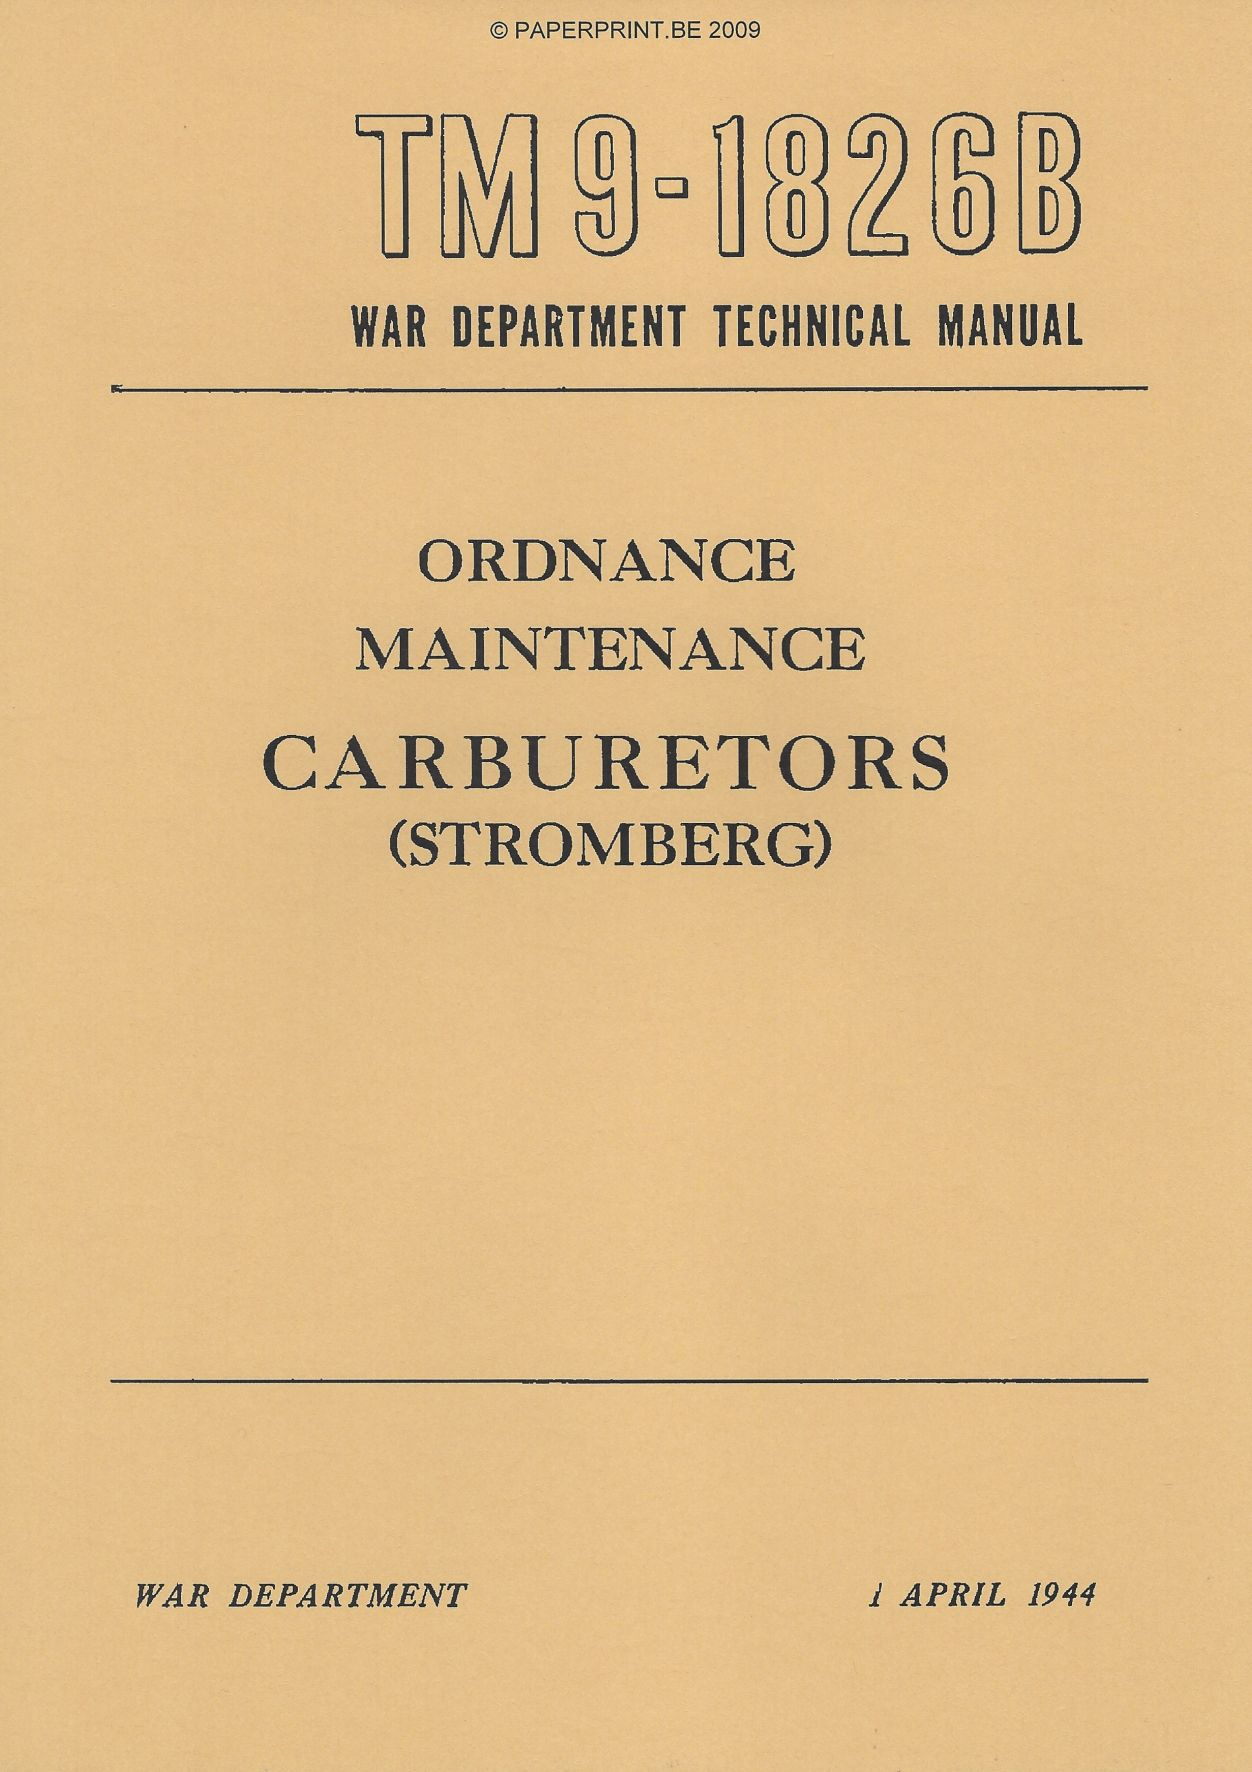 TM 9-1826B US CARBURETORS (STROMBERG)